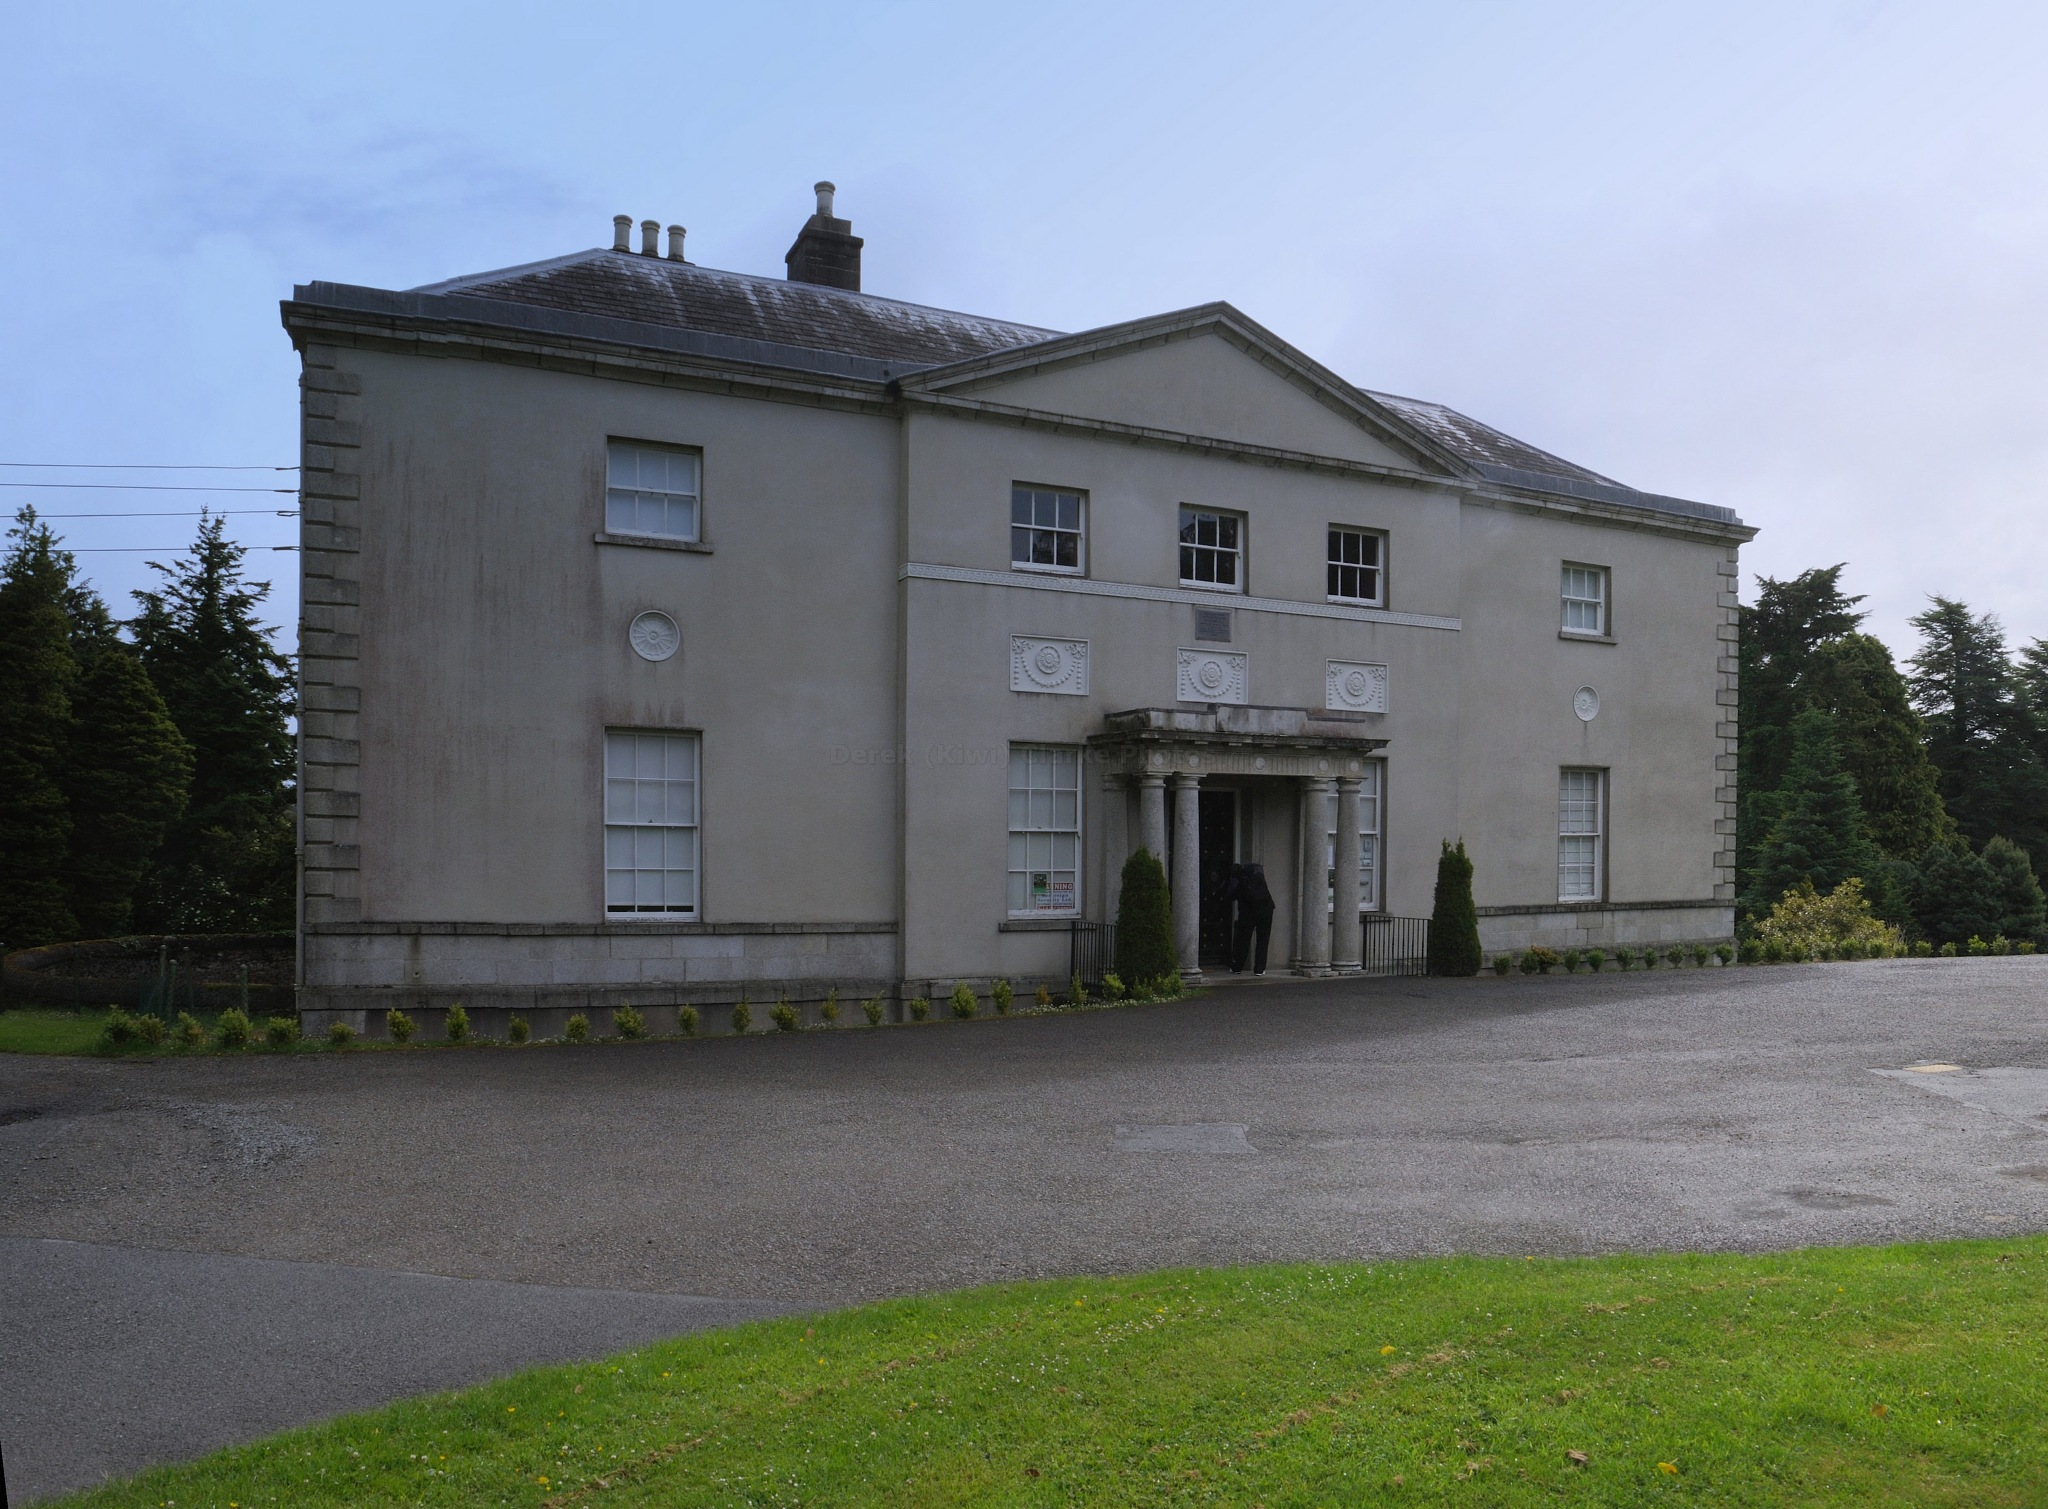 Panorama (64) - TPS Outing - Avondale House (June 2013) (1) by Derek Clarke